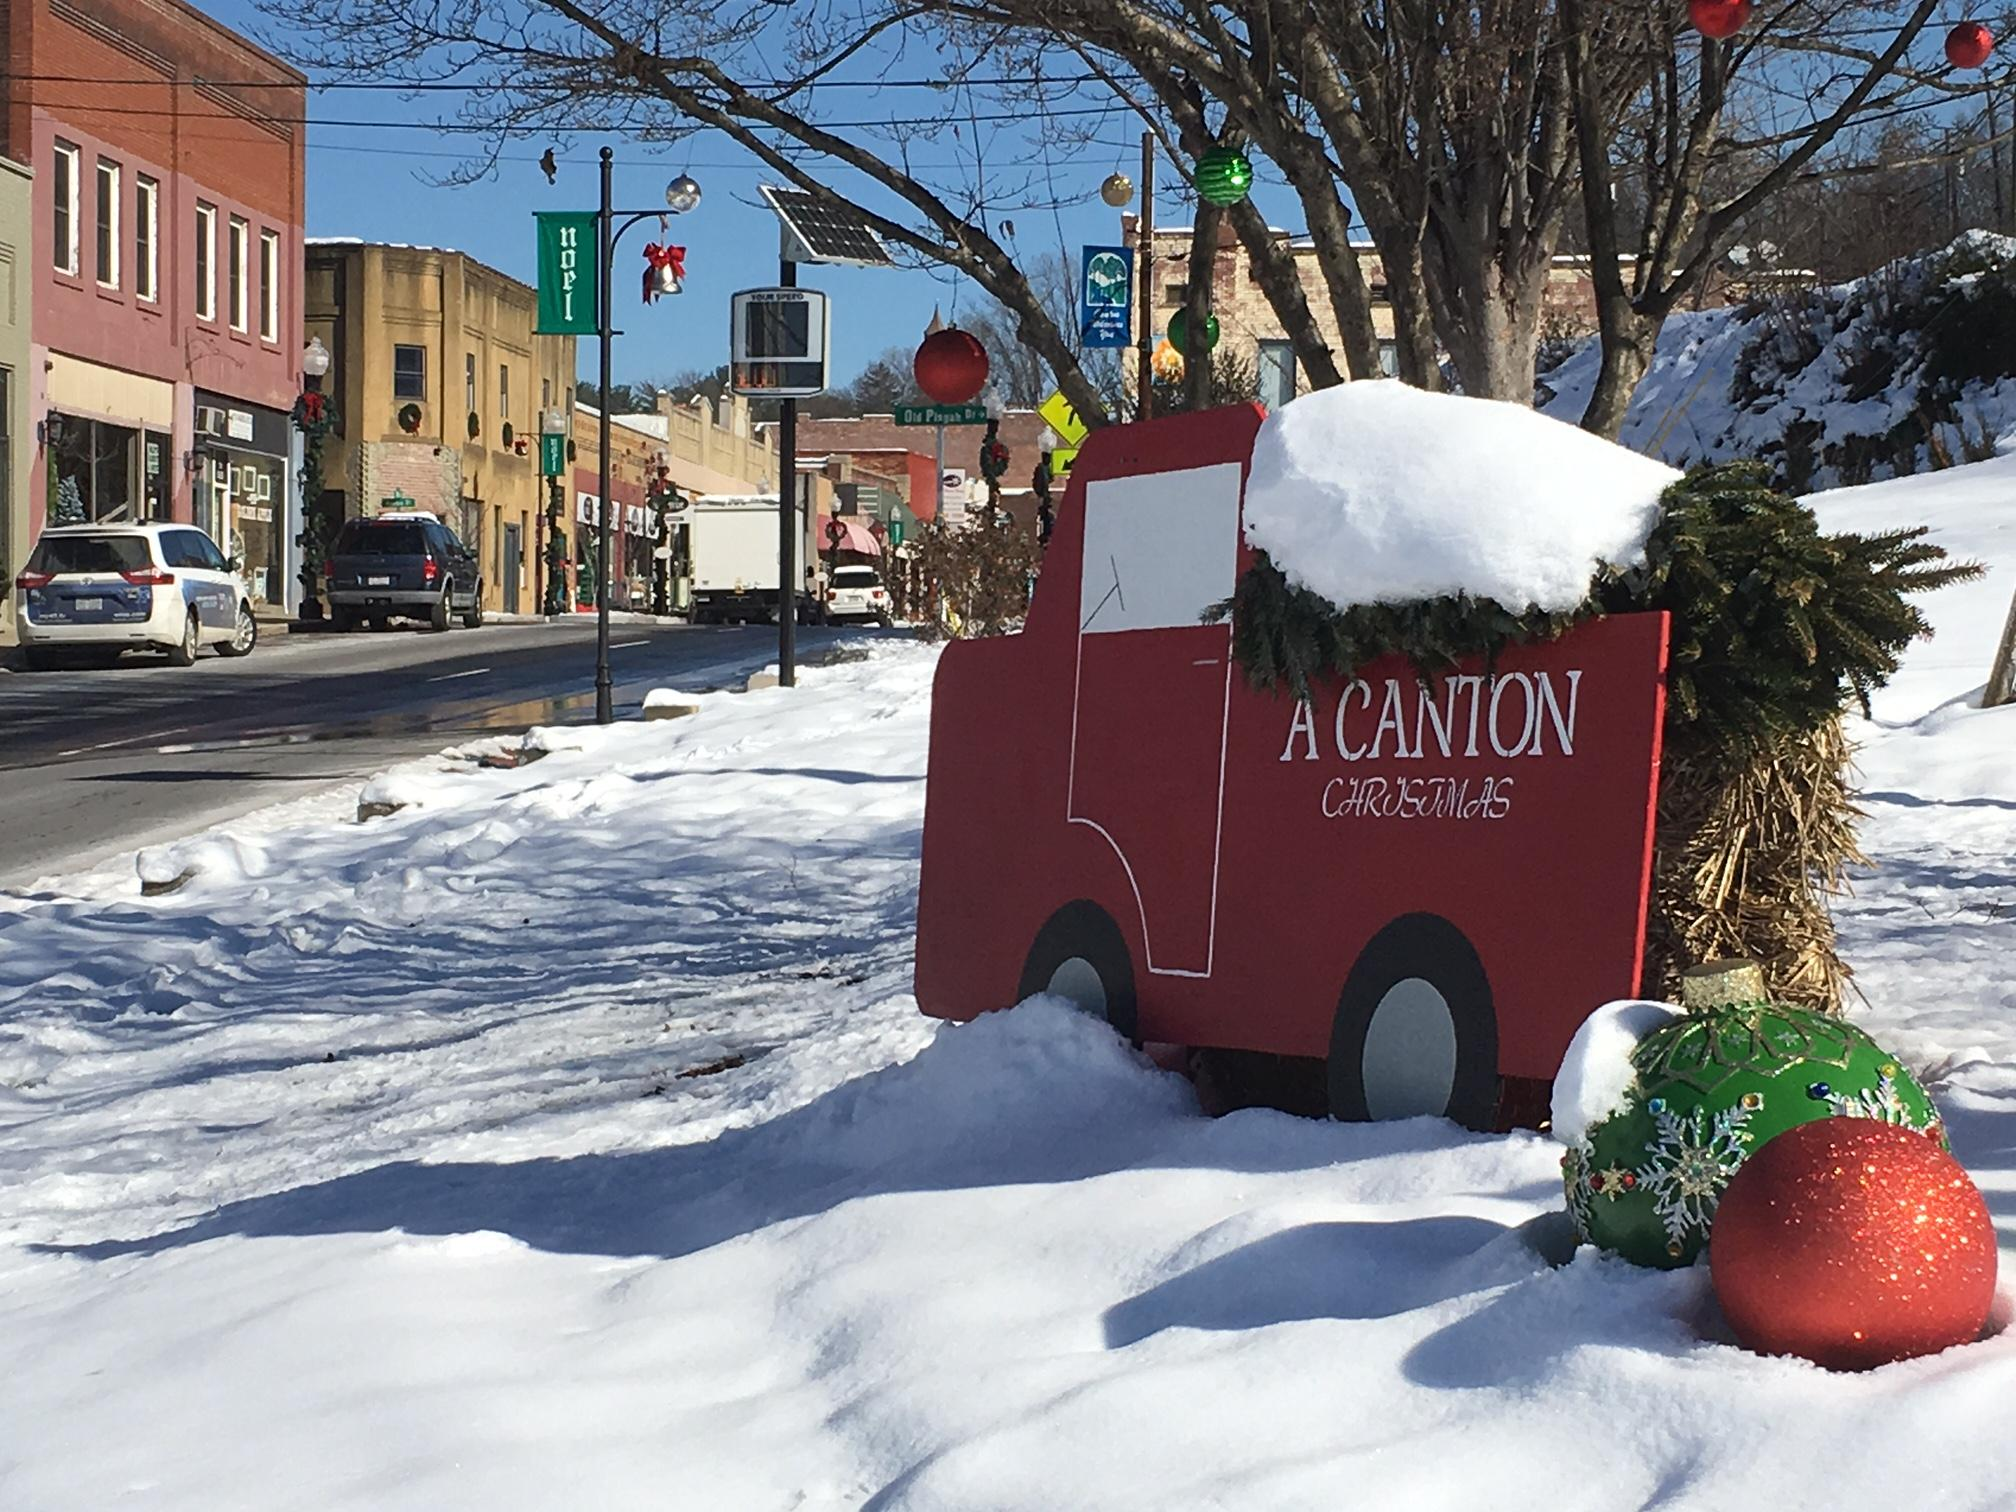 Canton town leaders said their Christmas parade last week was a huge success. But they also said there was an unwelcome presence. A group called Identity Europa placed fliers along the parade route. (Photo credit: WLOS staff)